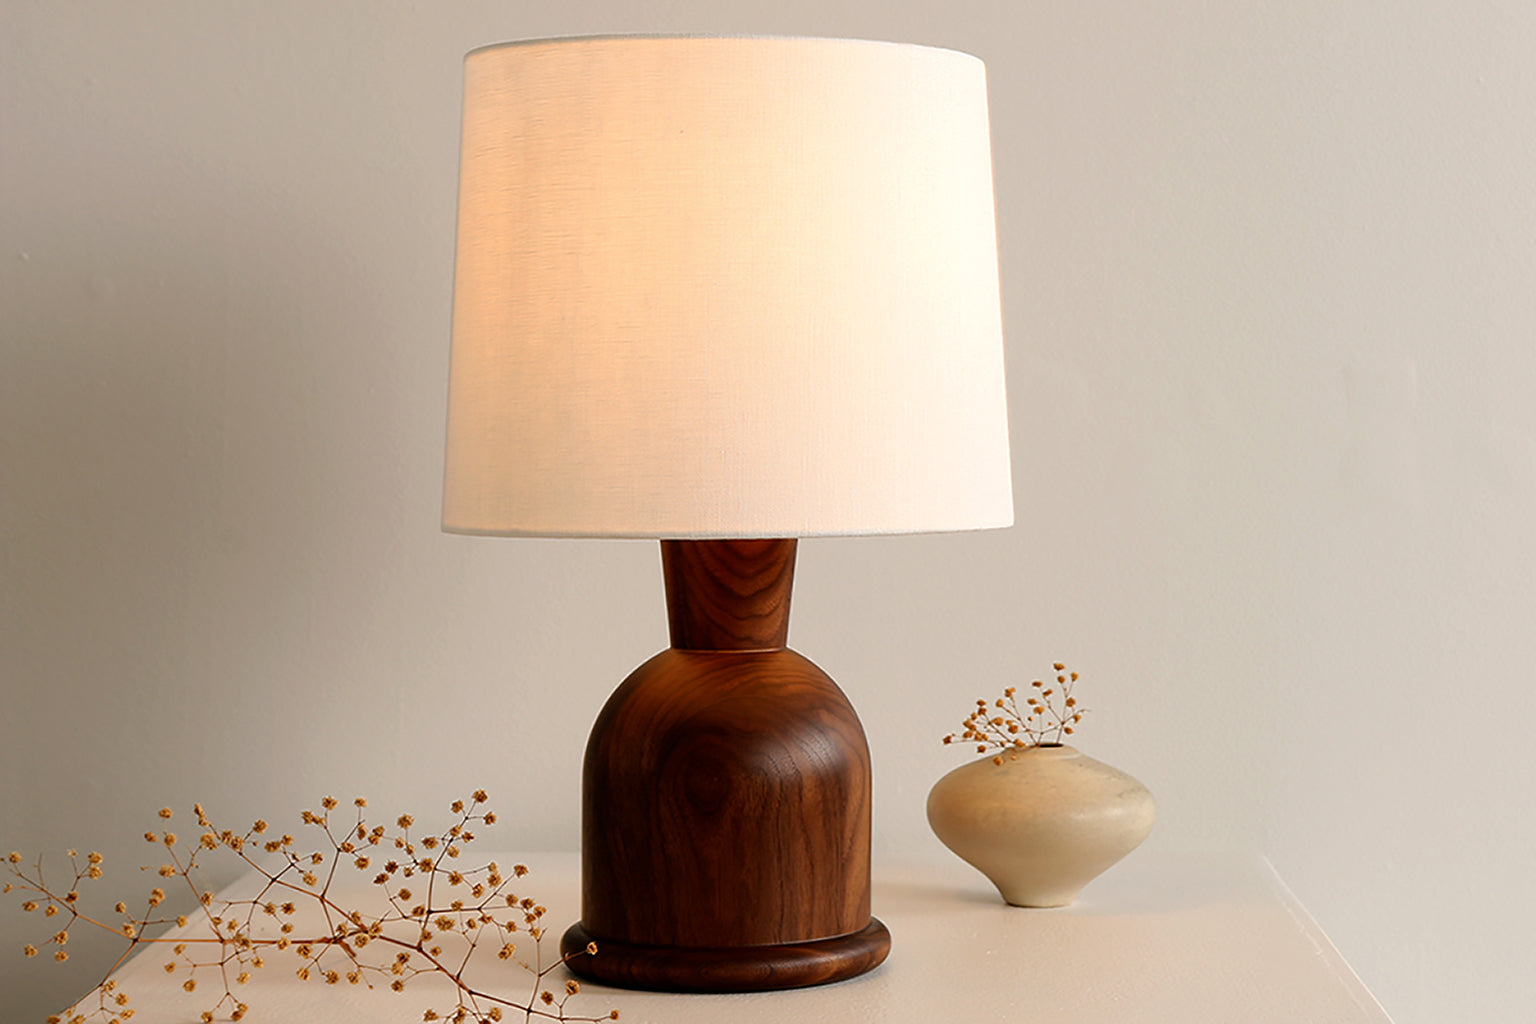 Small table lamp with hardwood lamp body and rolled linen shade